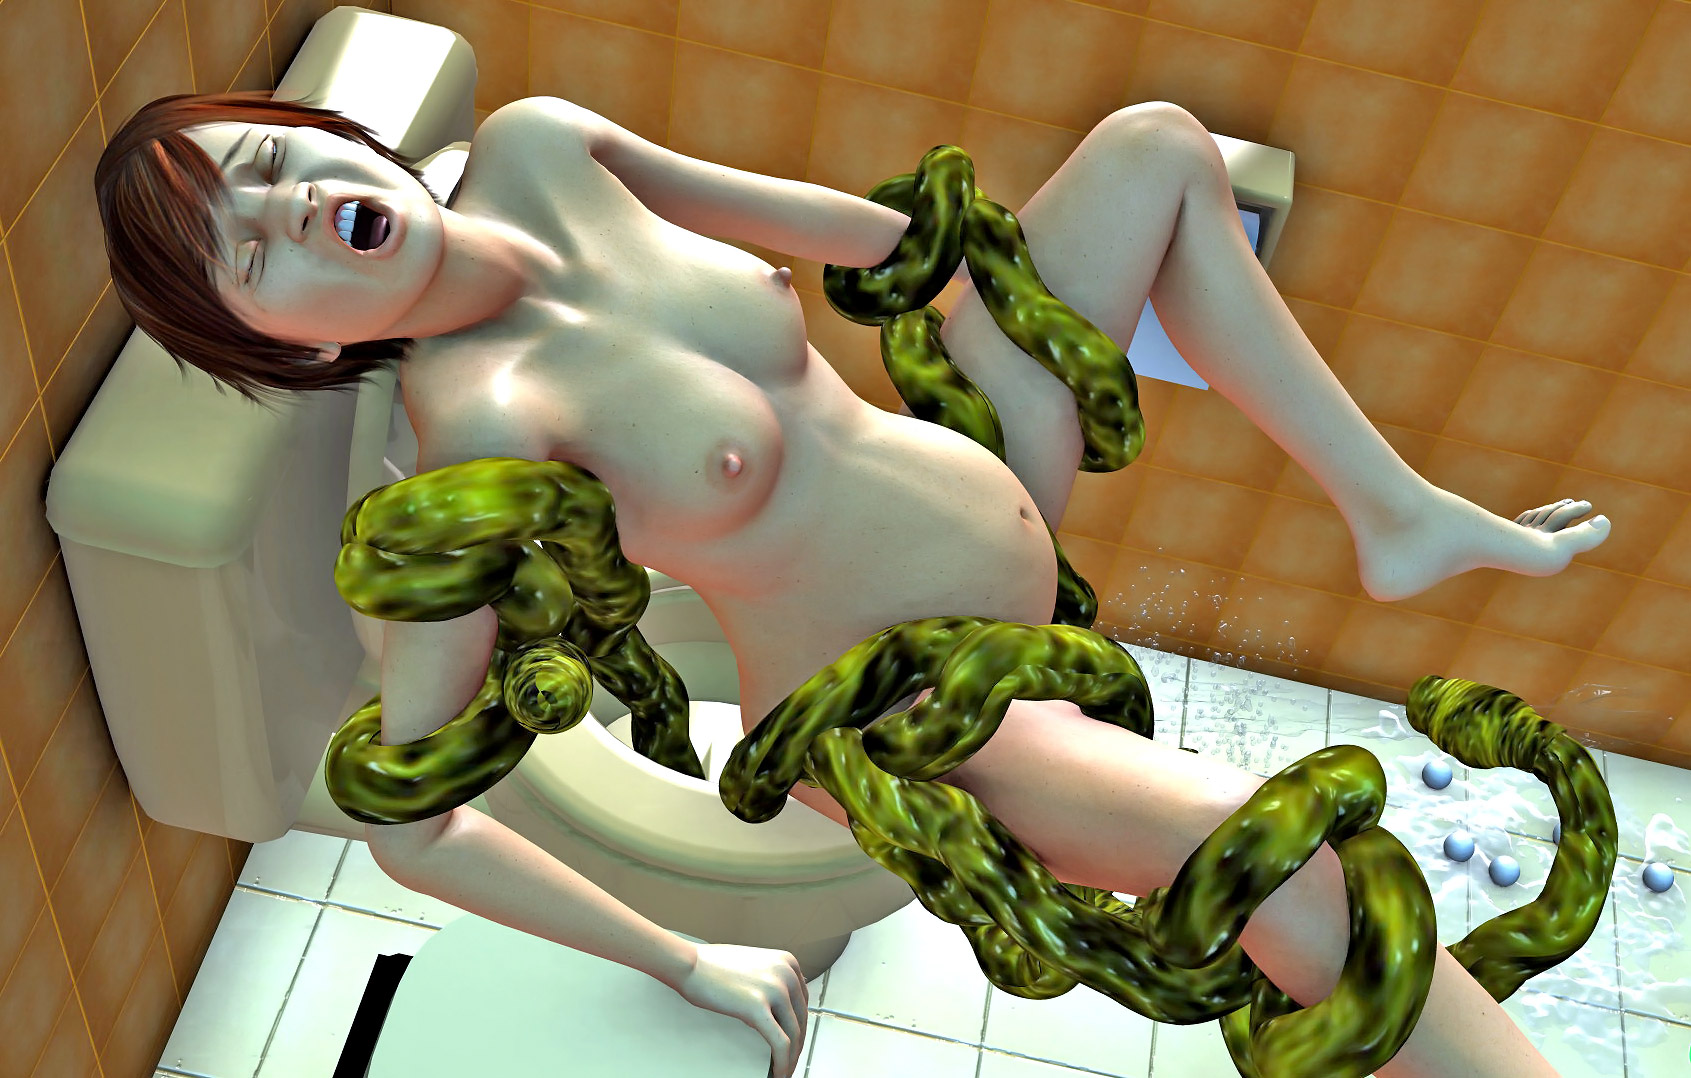 Elf girl gets fucked by tentacle monster  fucked galleries